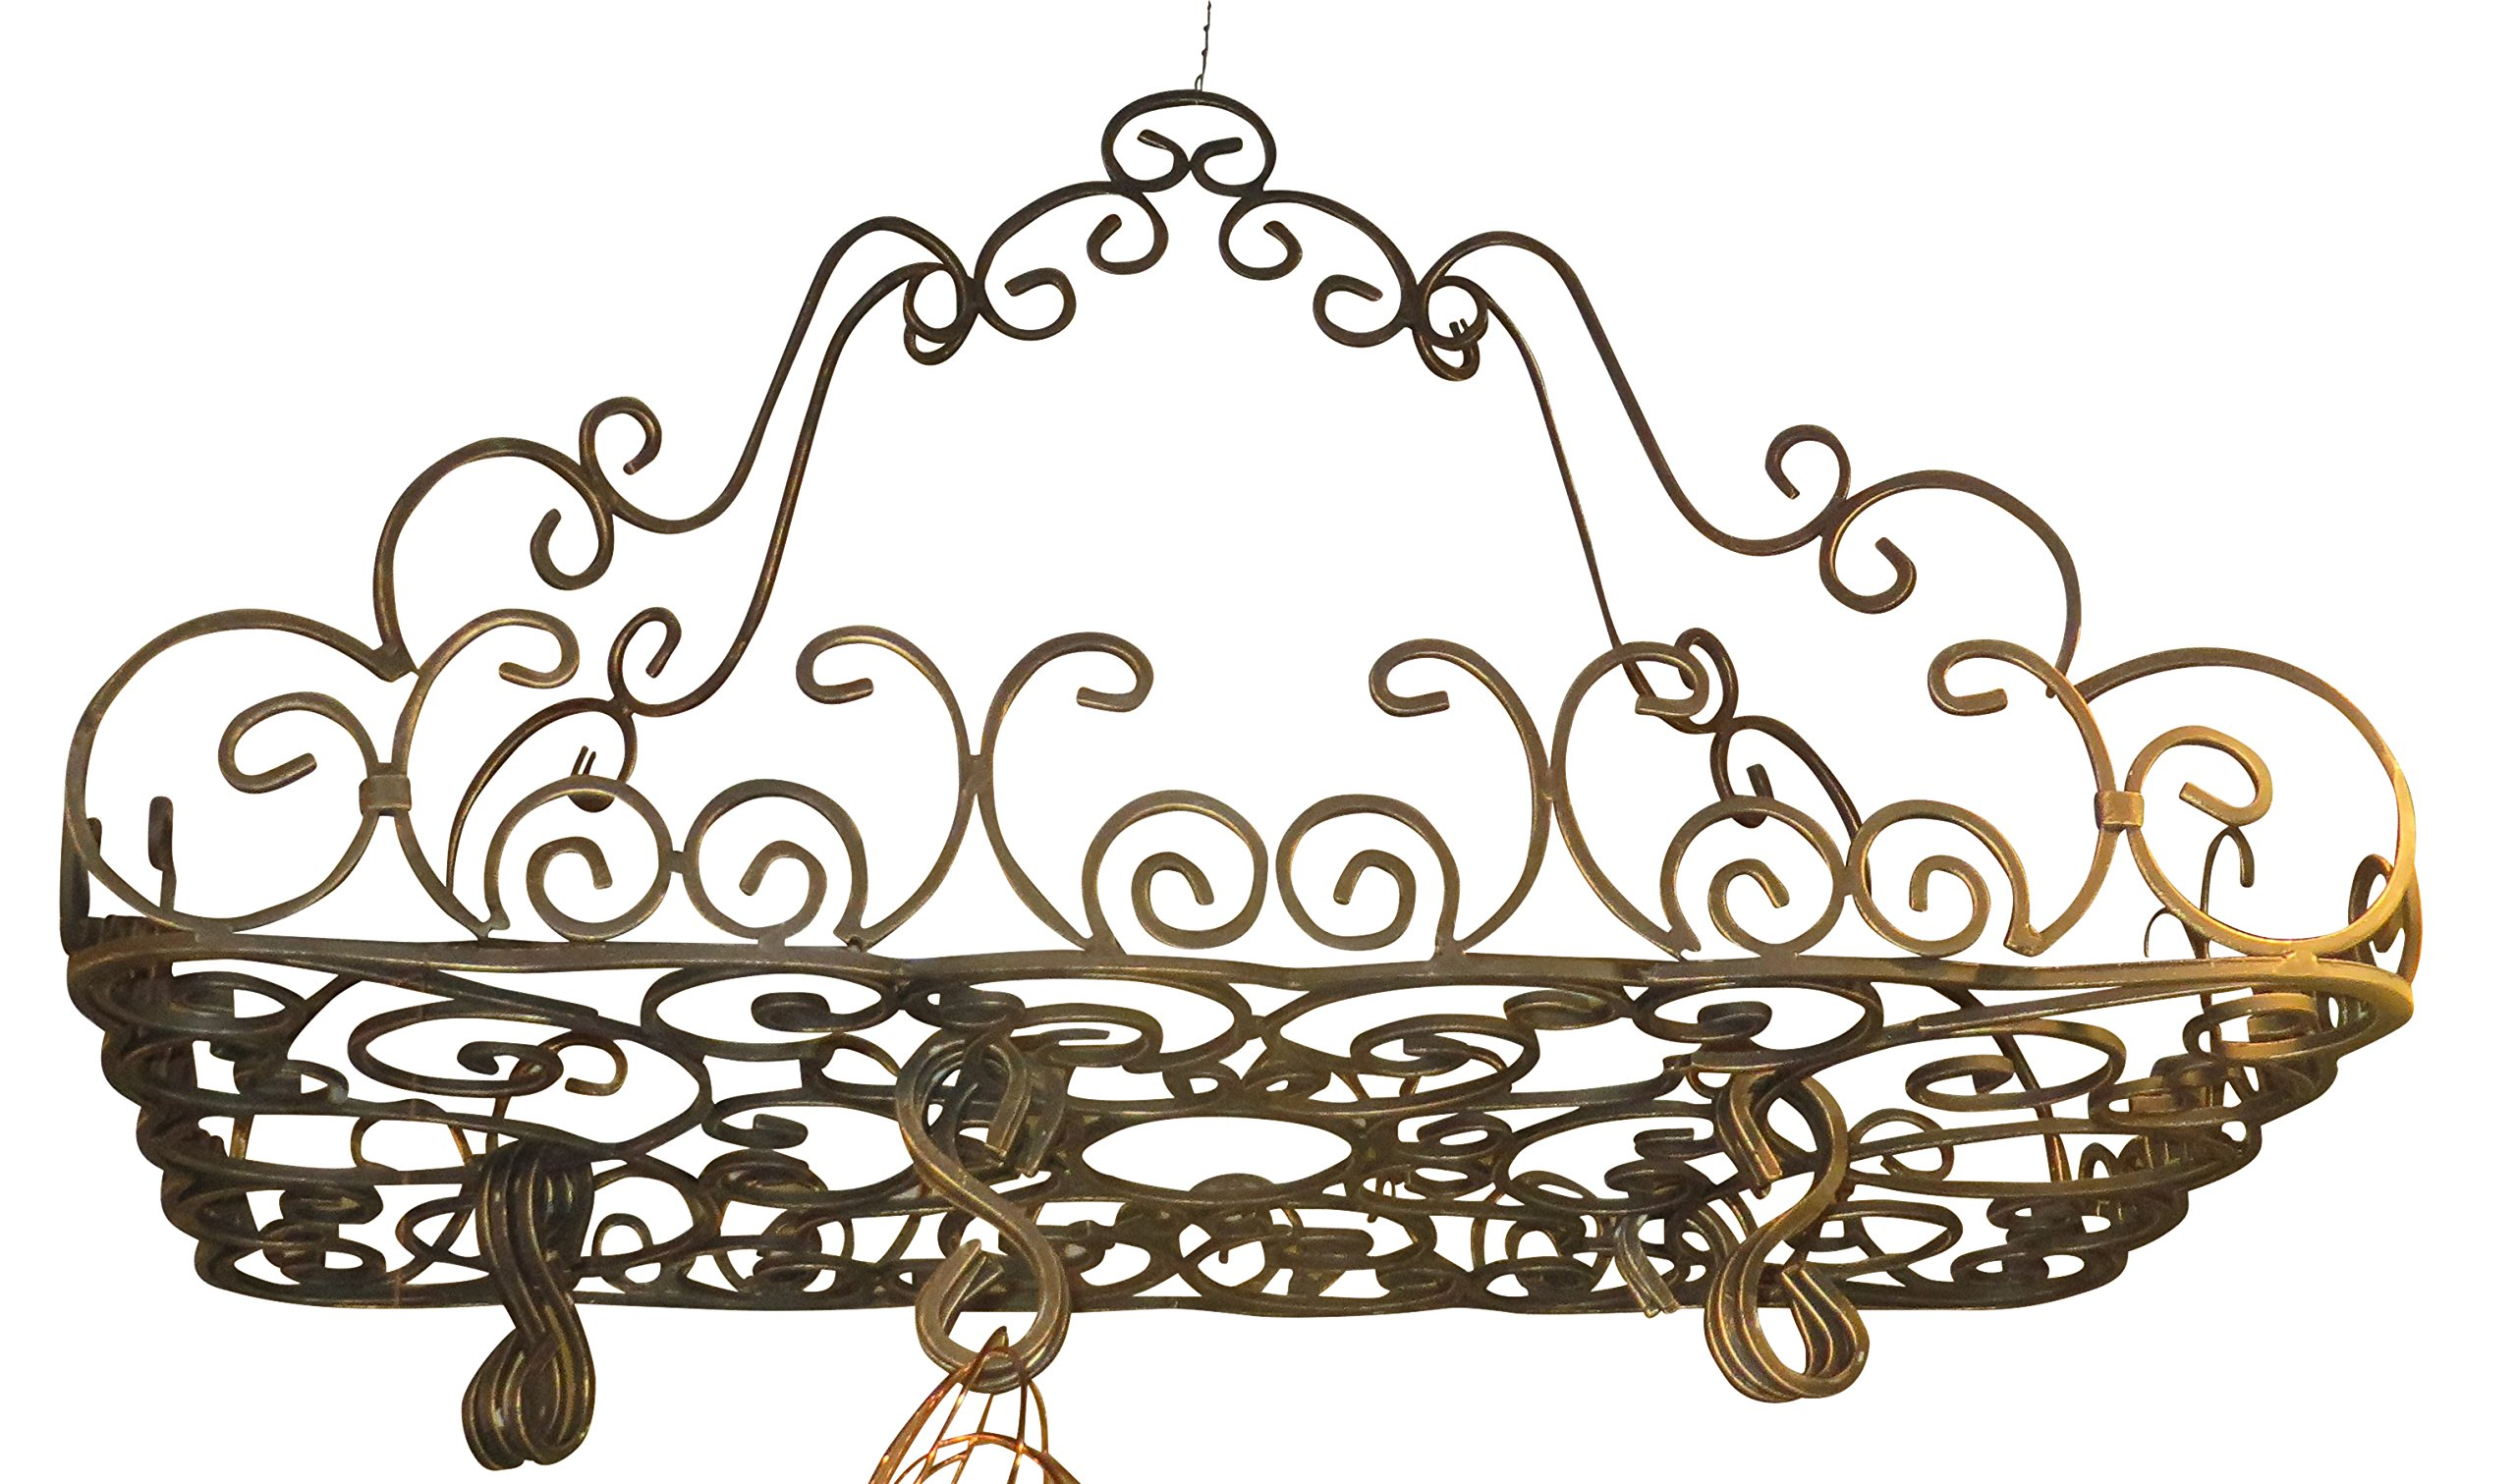 Posh Ornate French SCROLL Iron POT RACK Pan Hanging Ceiling Designer Metal